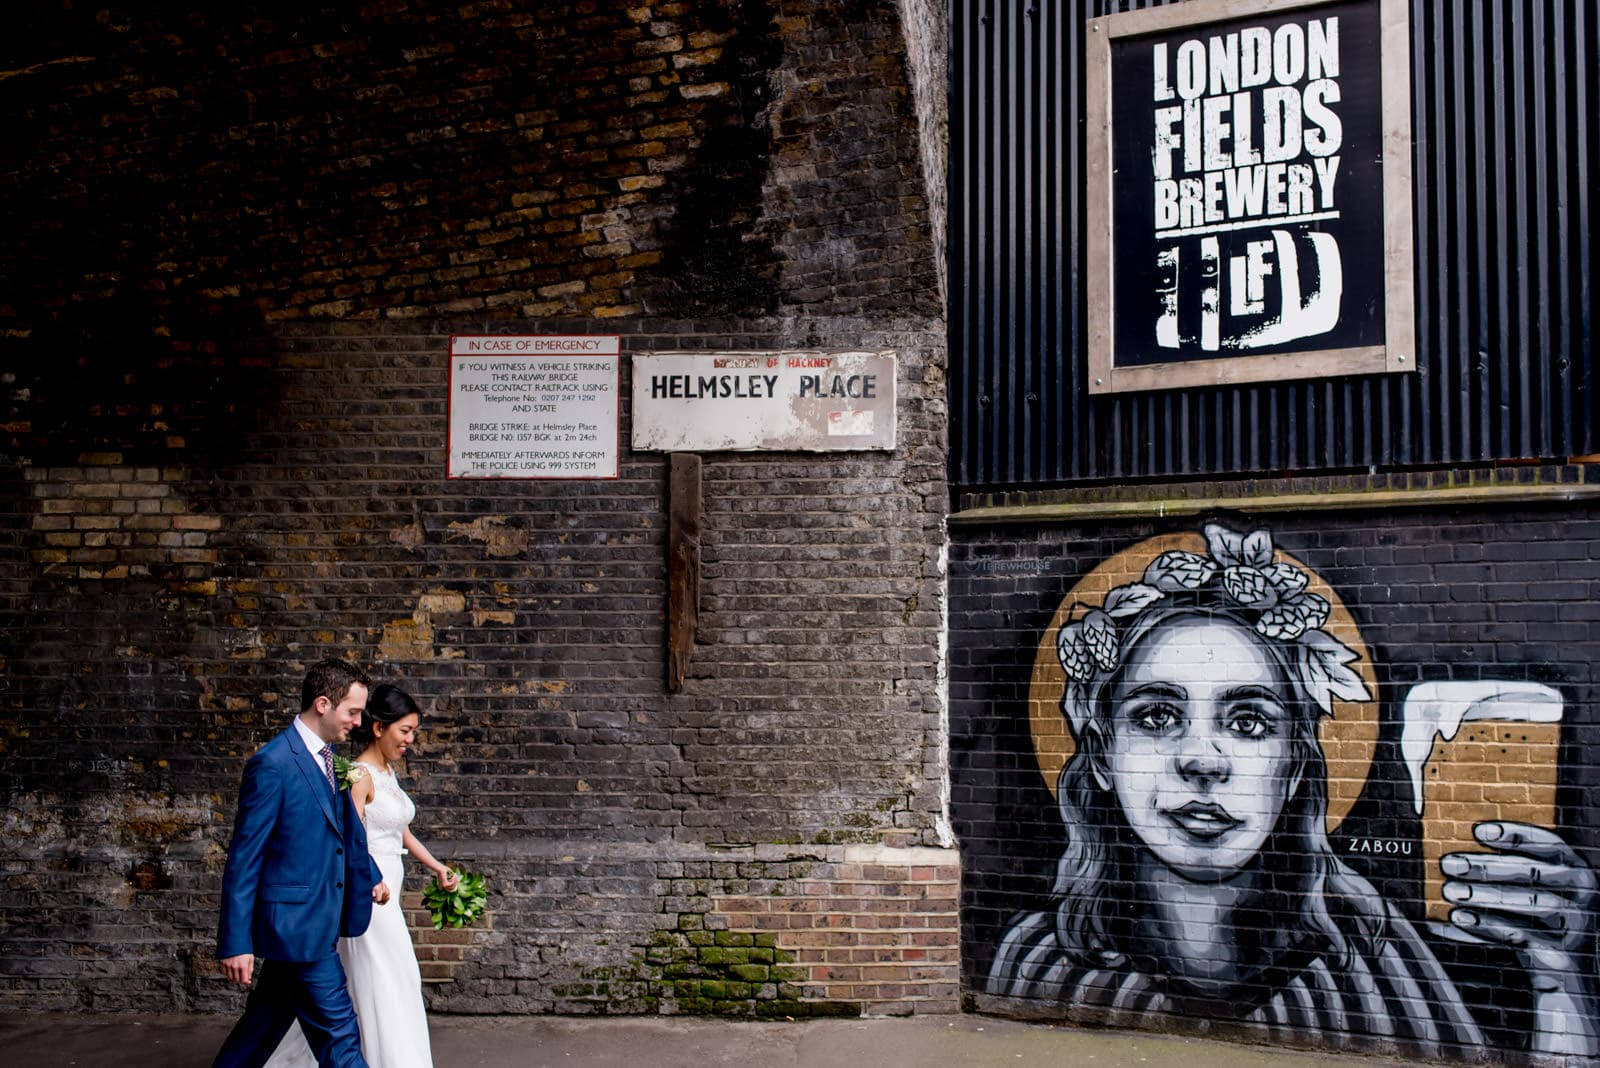 bride and groom walking past London Fields brewery sign for their wedding